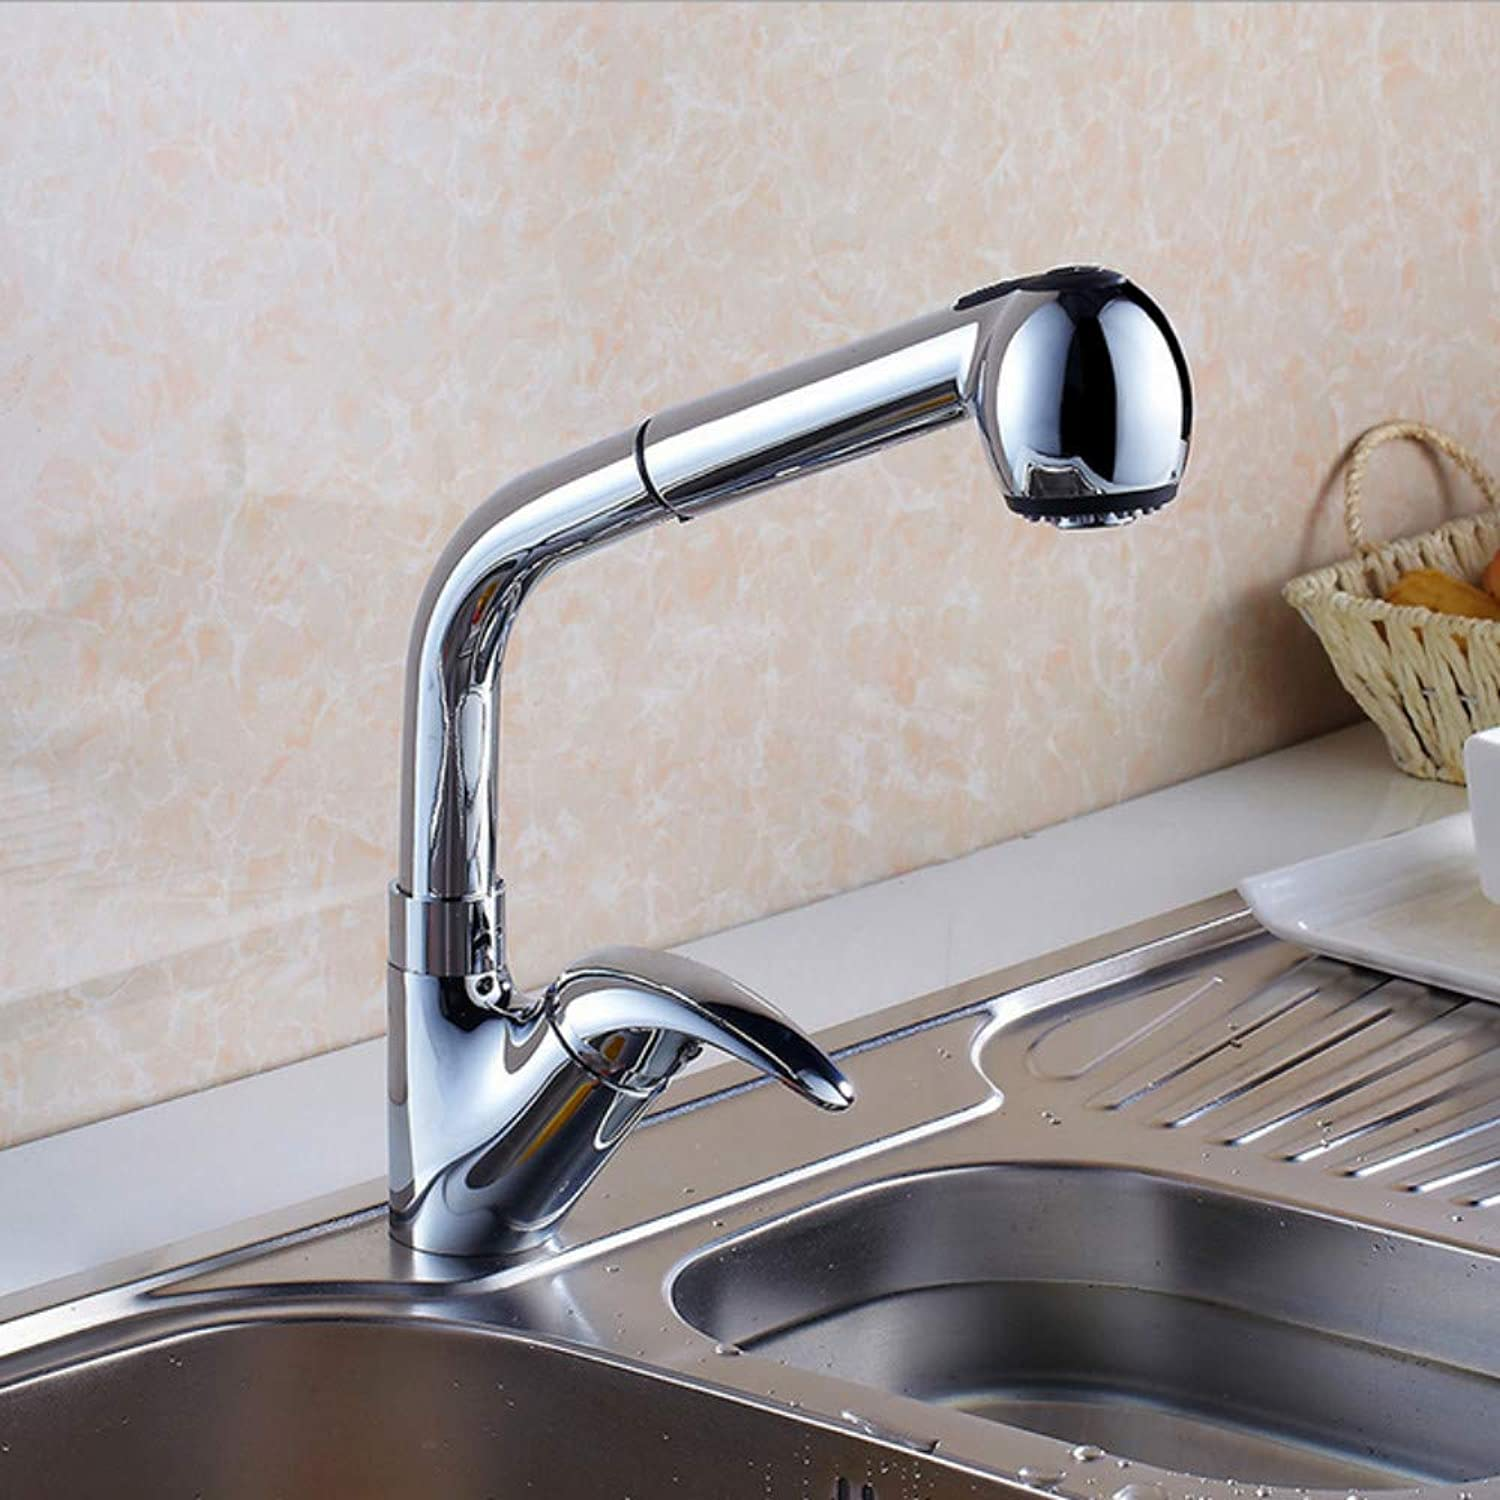 Xiujie Faucet Kitchen Pull-Out redatable Faucet Single Handle Single Hole Sink Sink Hot and Cold Faucet with Shower